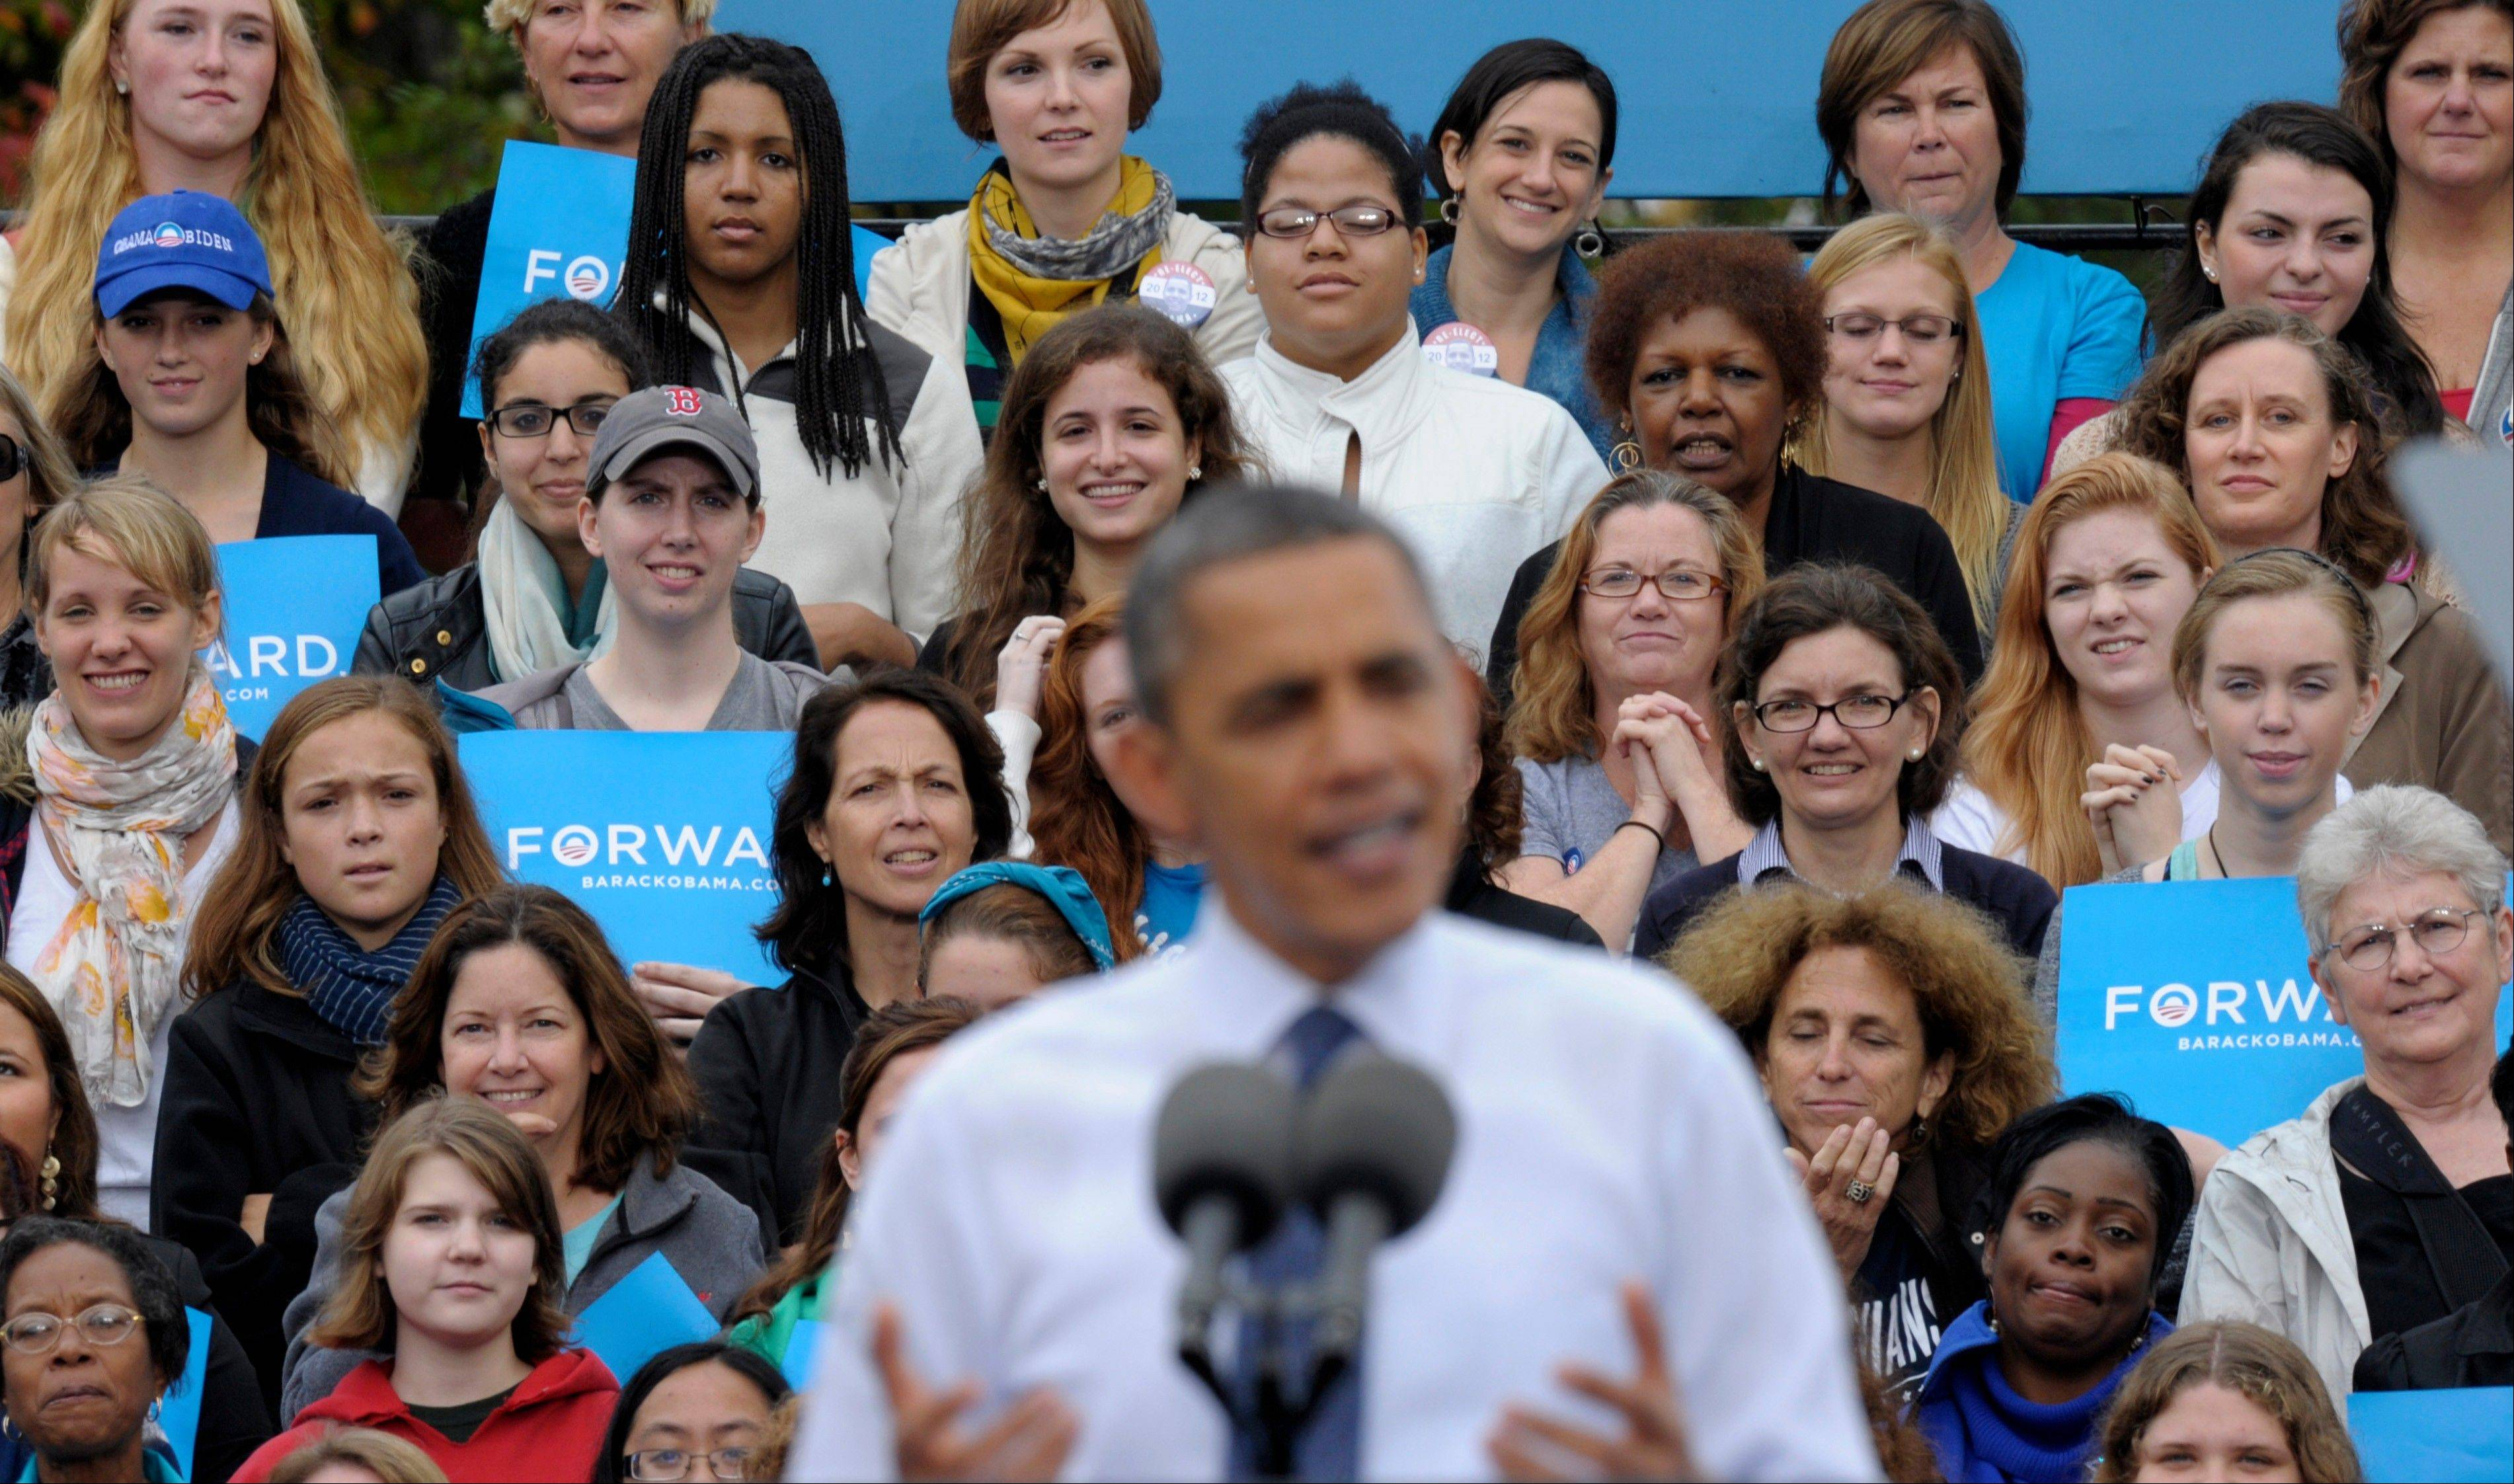 Associated Press/Oct. 19, 2012 A mostly women audience listens behind President Barack Obama as he speaks about the choices facing them in the election, during a campaign event at George Mason University in Fairfax, Va. More women voted for Obama, more men for Romney.